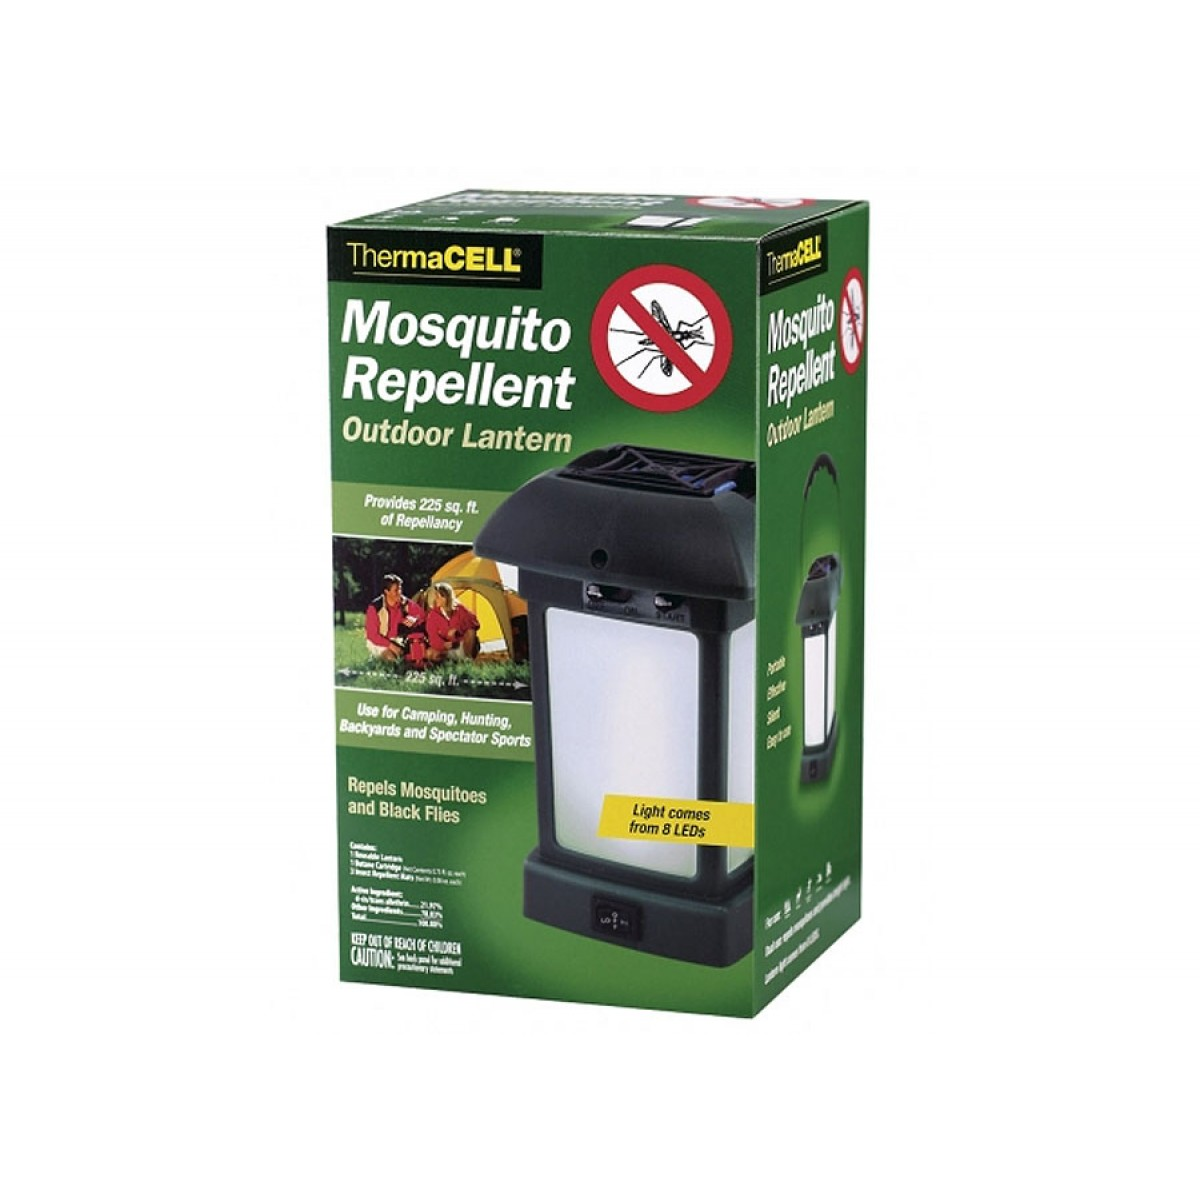 ThermaCELL Mosquito Repellent Outdoor Lantern- Kellyco